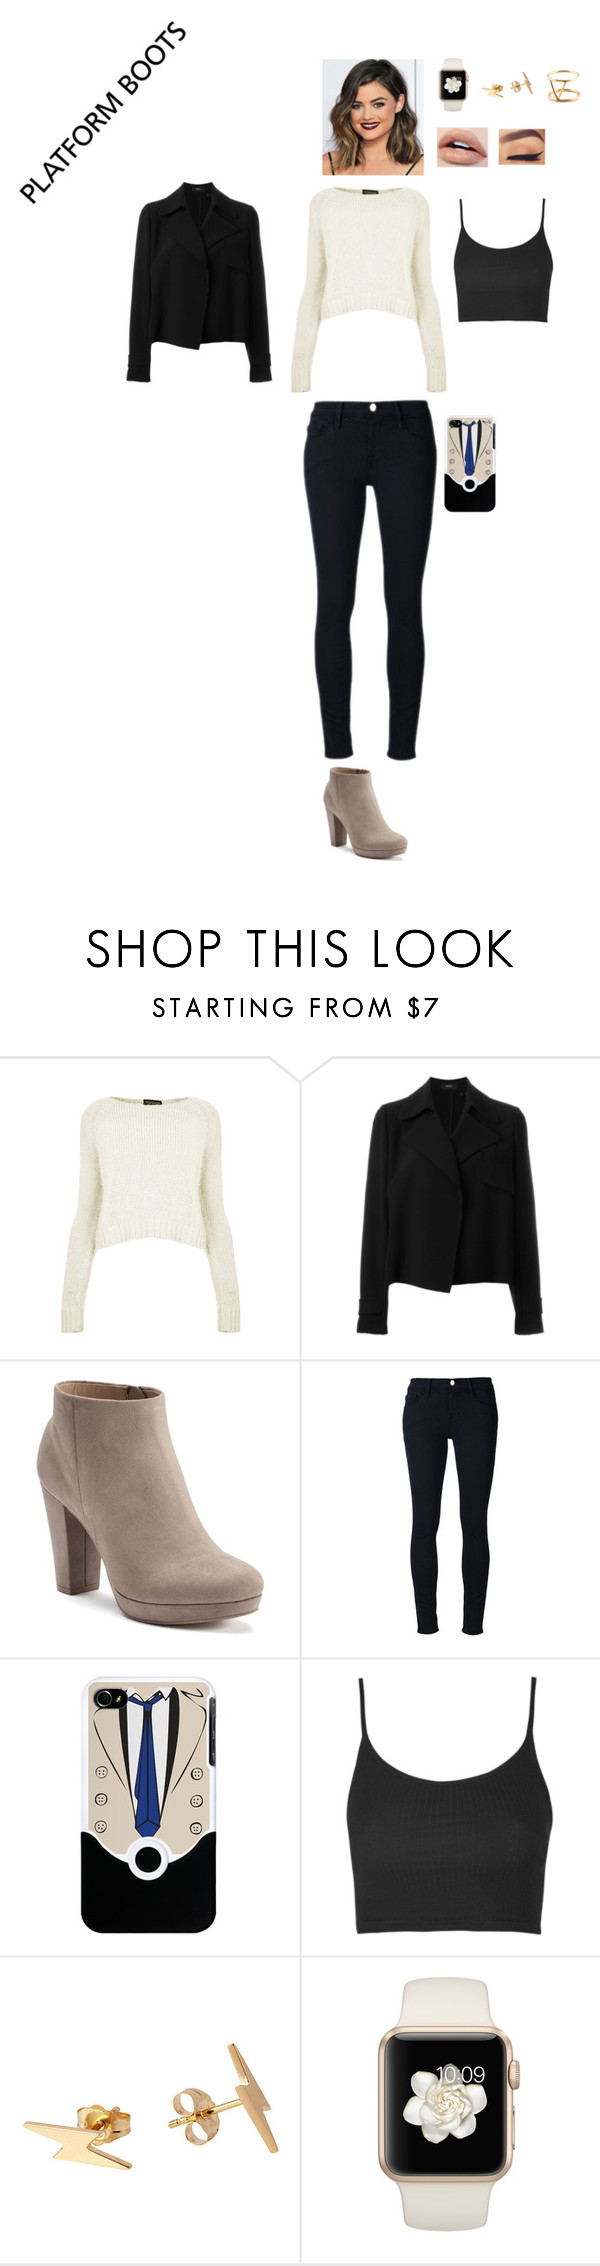 """Kickin' It: Platform Boots"" by leacousty55 ❤ liked on Polyvore featuring Topshop, Theory, LC Lauren Conrad, Frame and SOKO"